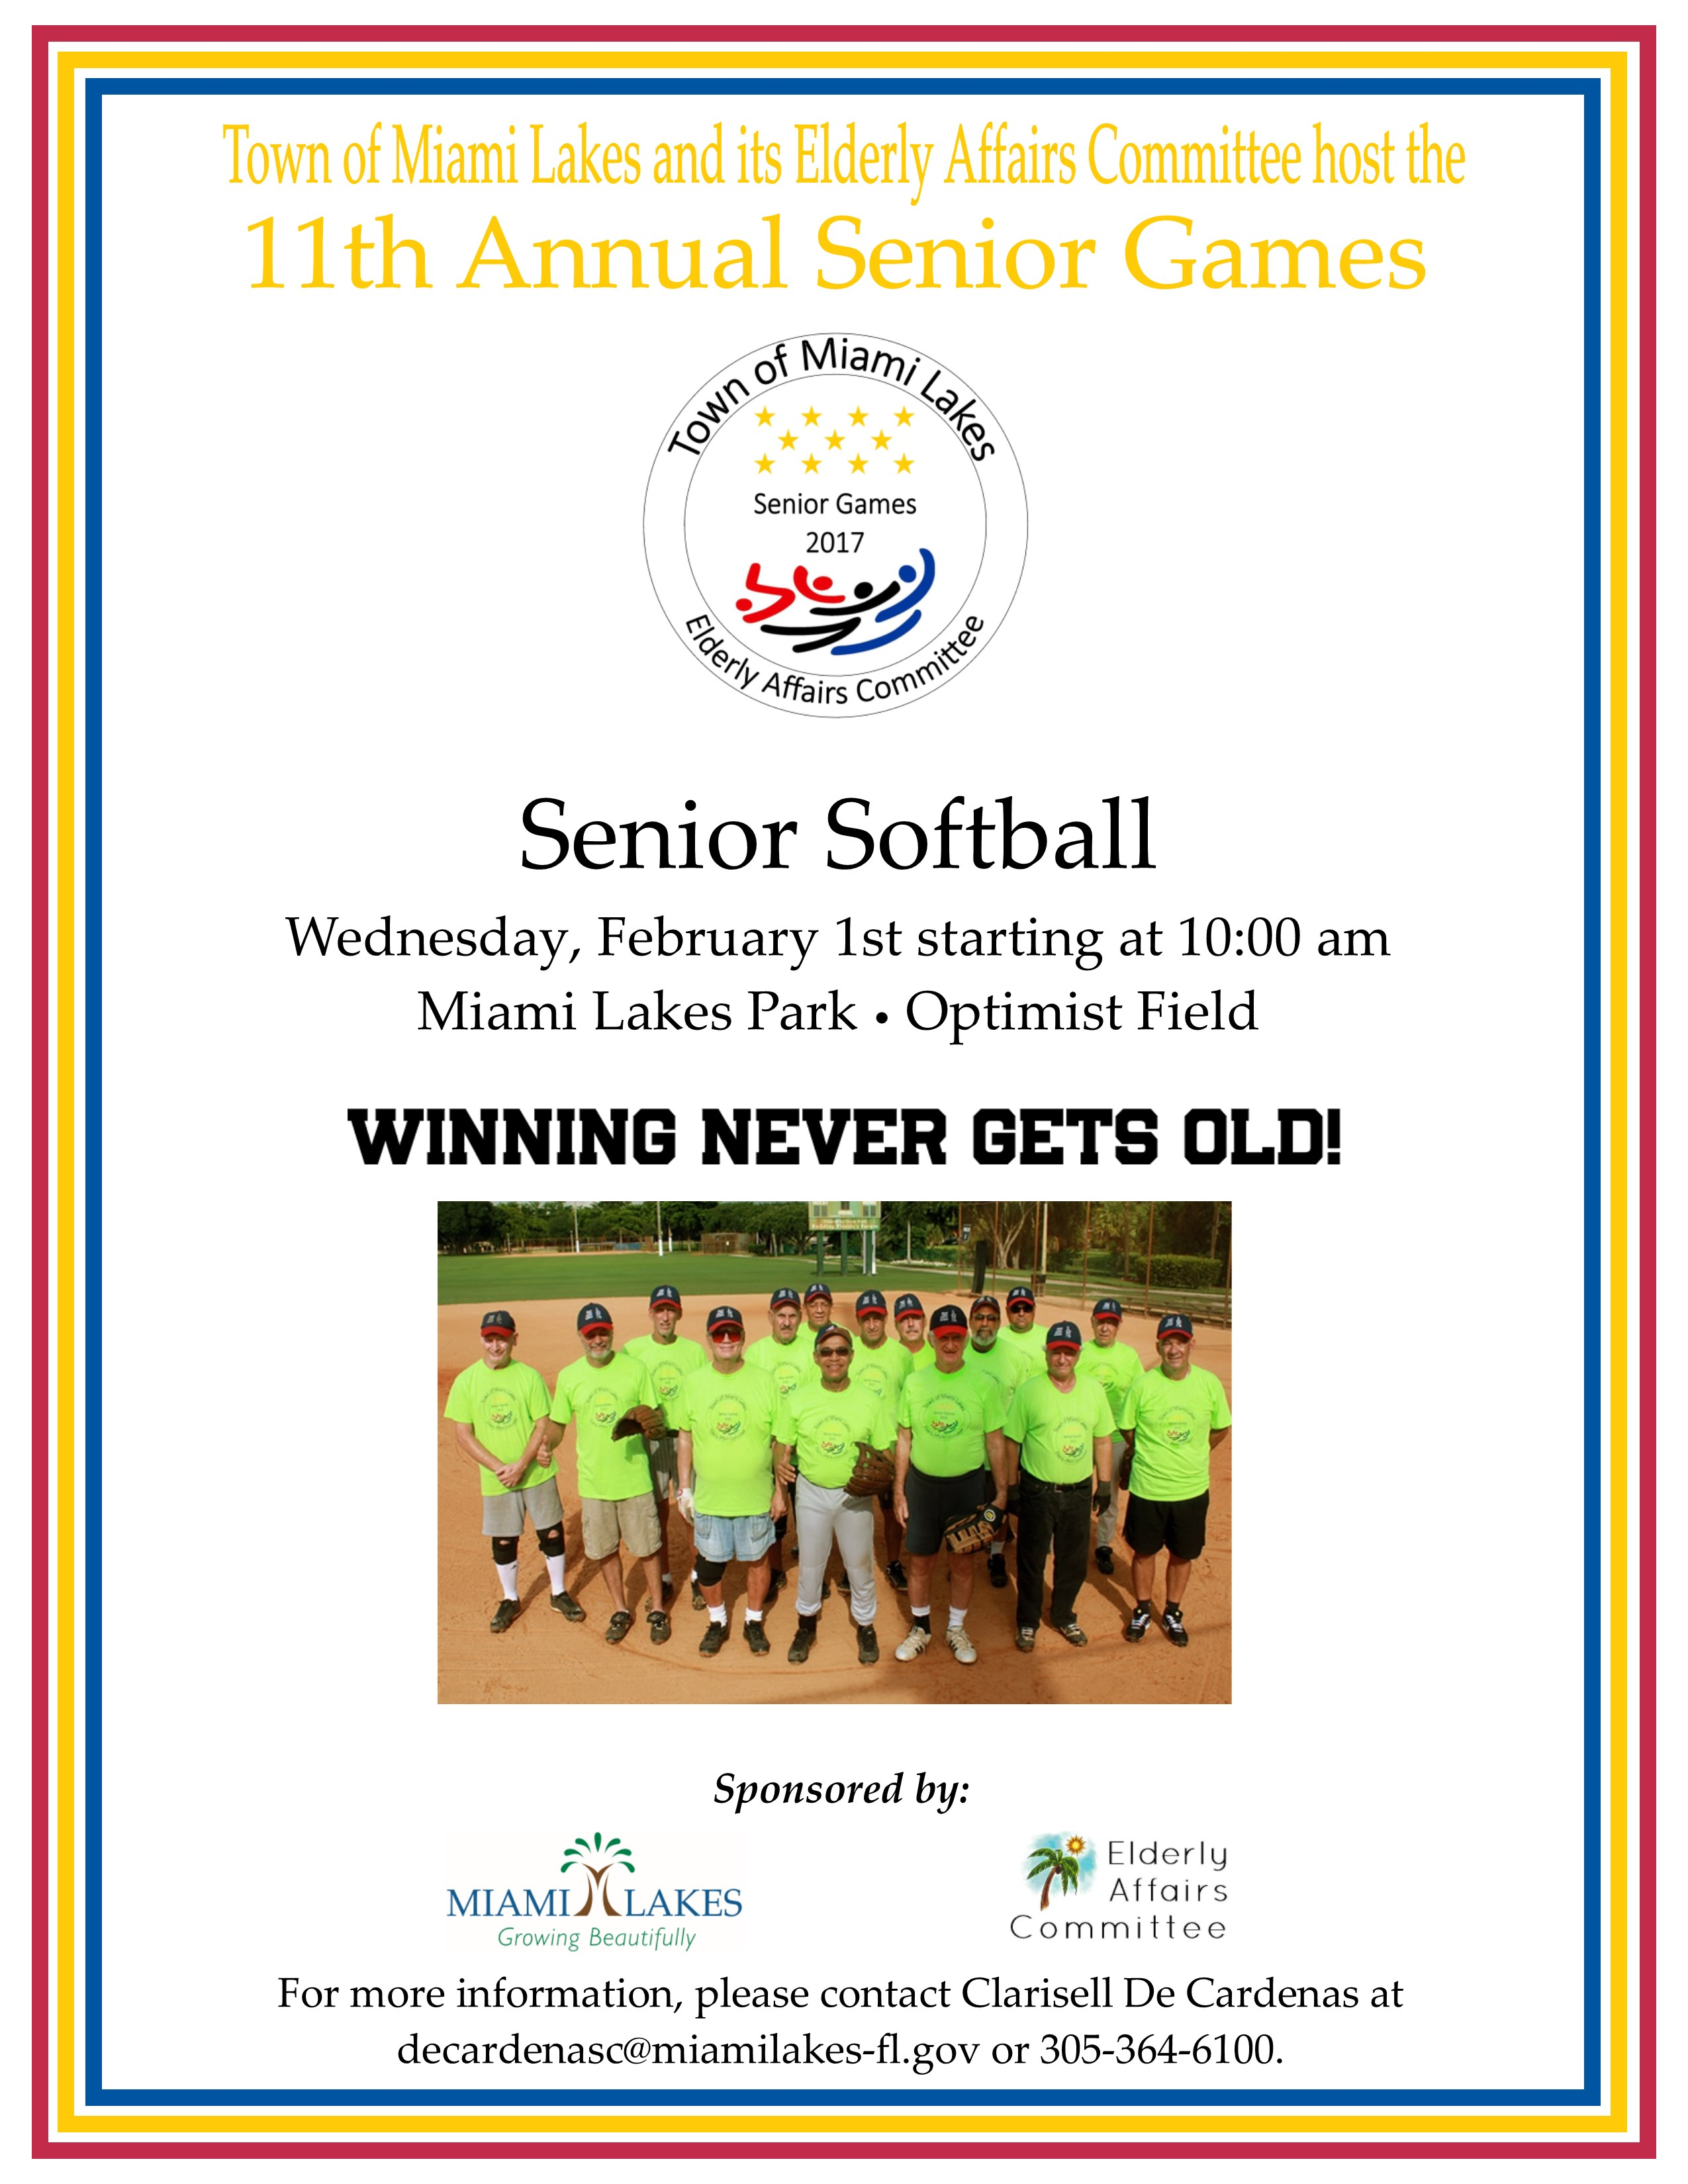 Senior Games Softball 2017